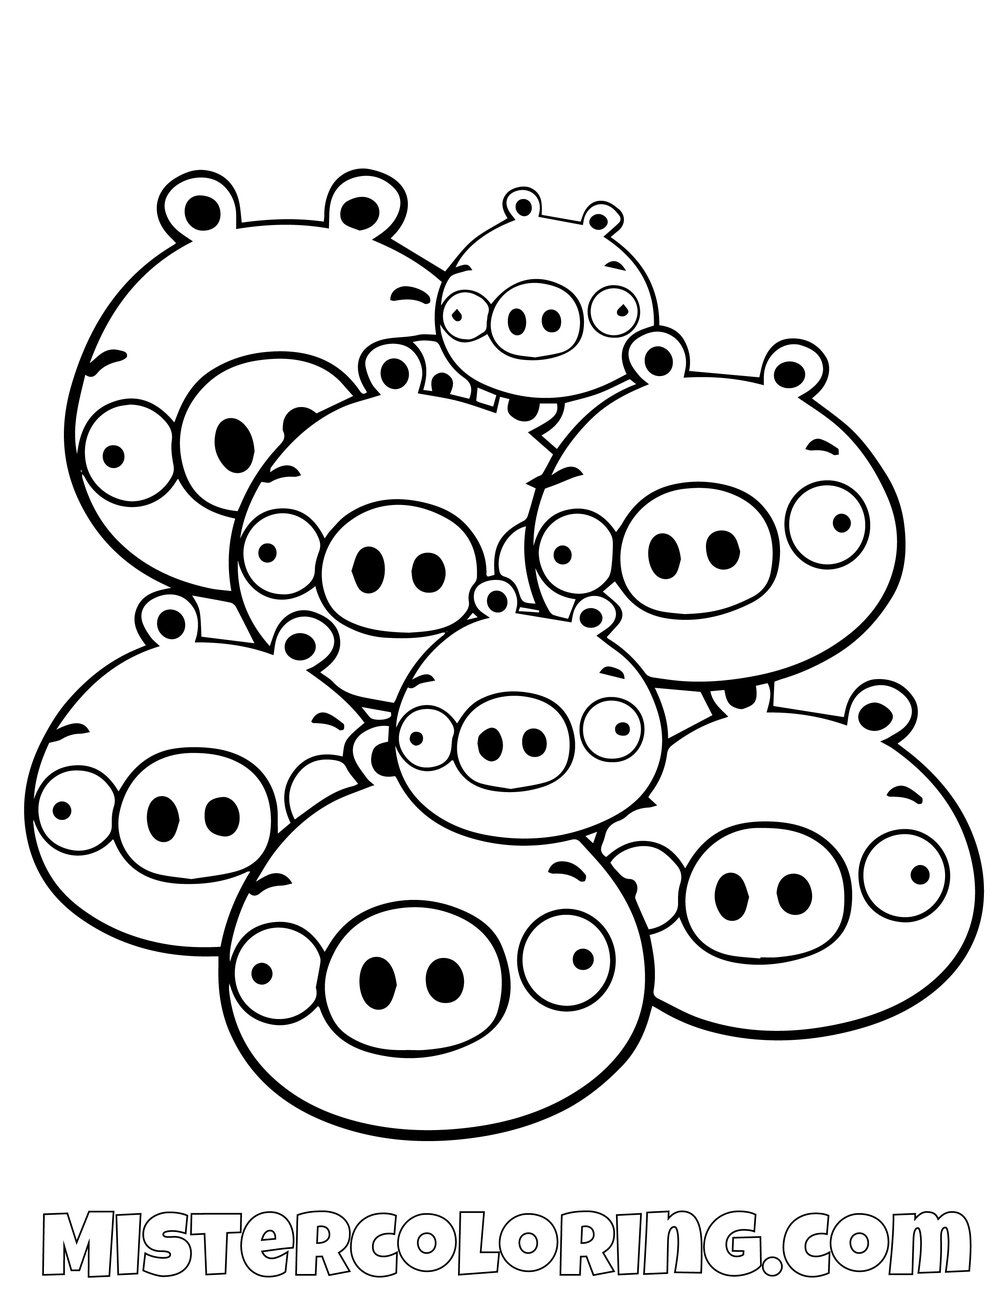 A Group Of Pigs Angry Birds Coloring Pages Bird Coloring Pages Tinkerbell Coloring Pages Cartoon Coloring Pages